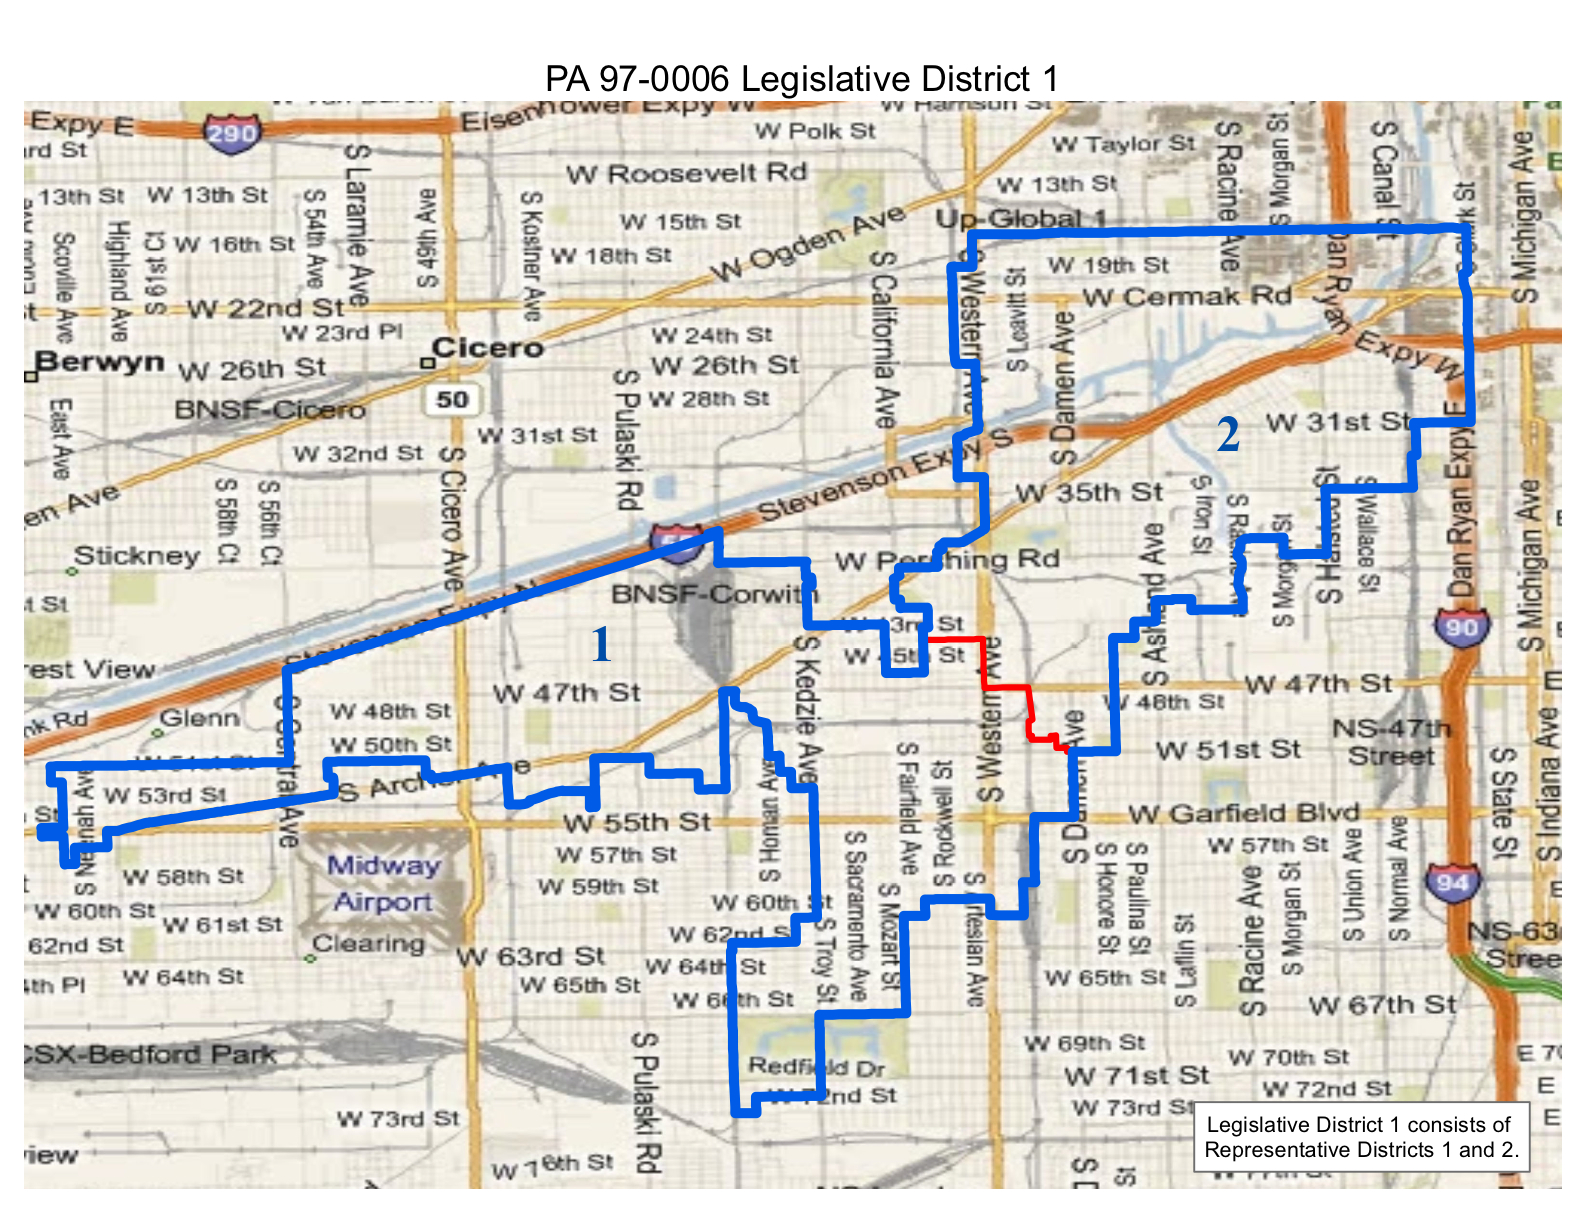 Will County Politics: Redrawn Illinois State Legislative and State on illinois judicial districts map, illinois house districts by zip code, illinois representative districts, illinois 4th district, us appeals court circuits map, illinois house of representatives, illinois appellate districts, illinois neighborhood map, illinois state land map, illinois state legislature, illinois united states map, illinois senatorial districts, chicago police districts zones map, illinois voting districts map, illinois district 18, illinois senators and representatives, illinois congressional districts, illinois state rep map, illinois state legislative map, illinois state legislative districts,